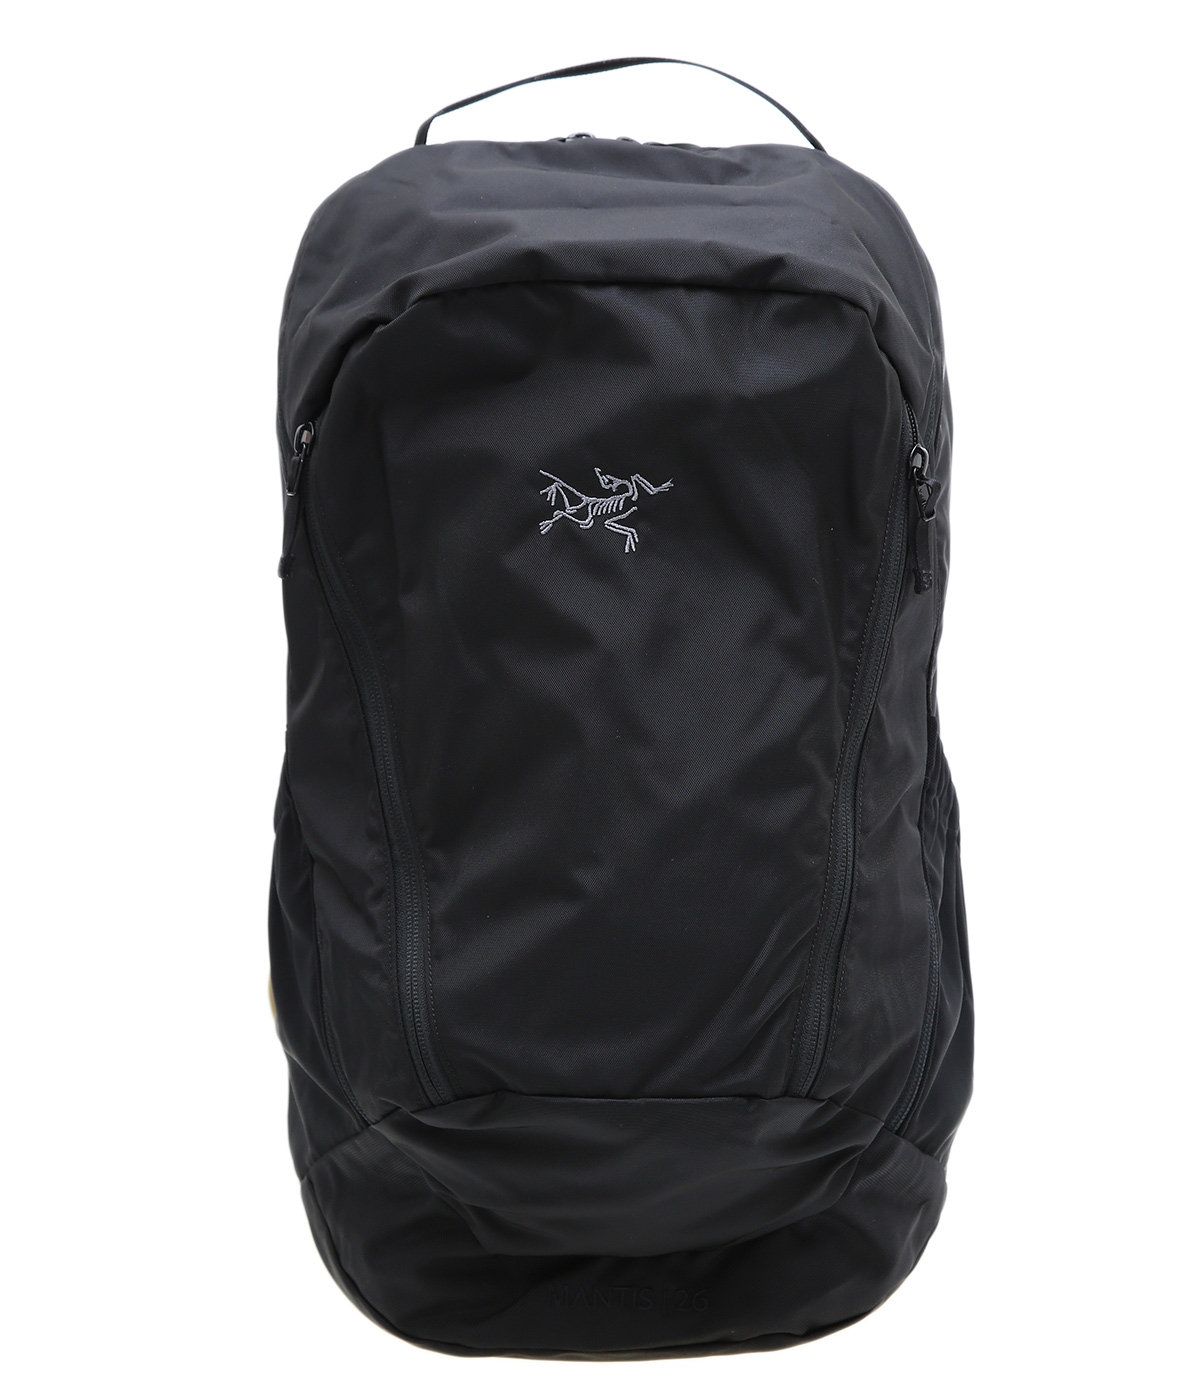 Mantis 26 Backpack